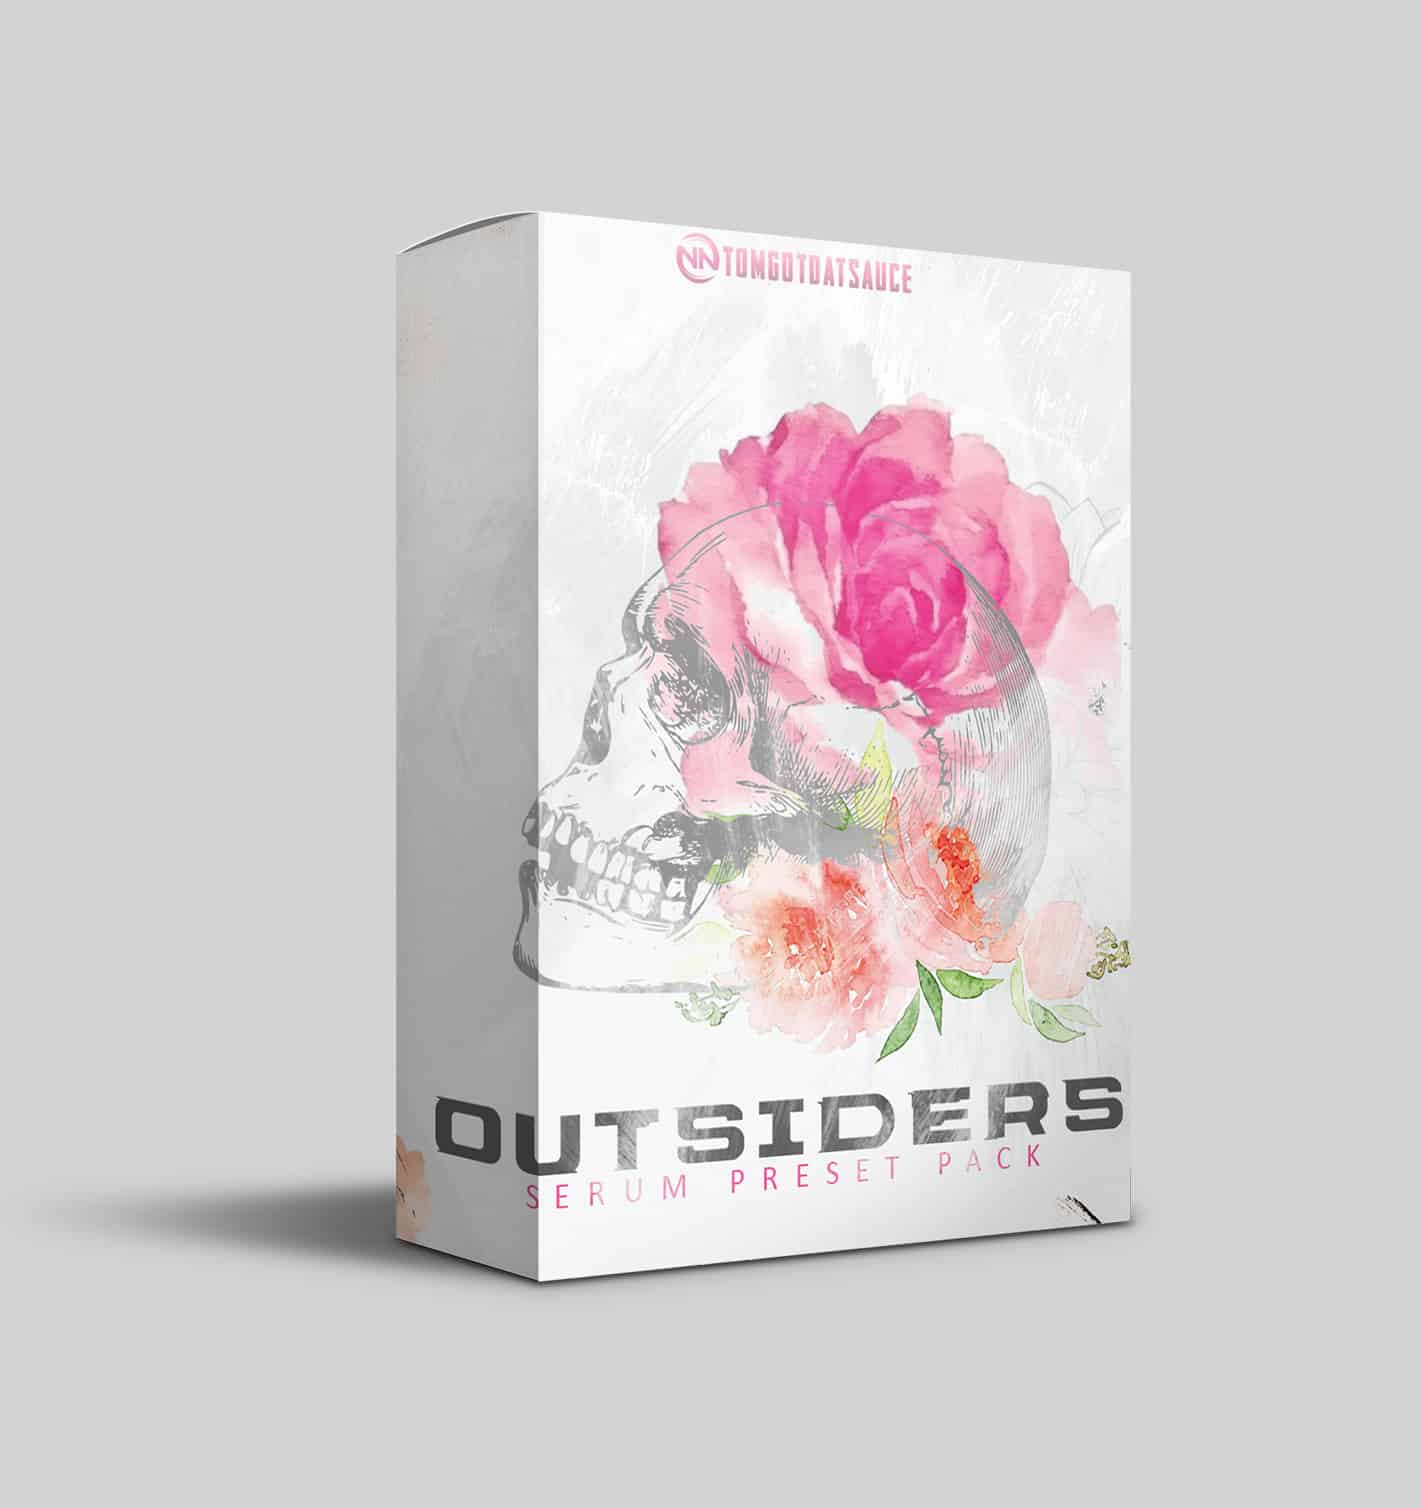 The Drum Banl (New Nation) Outsiders Serum Presets